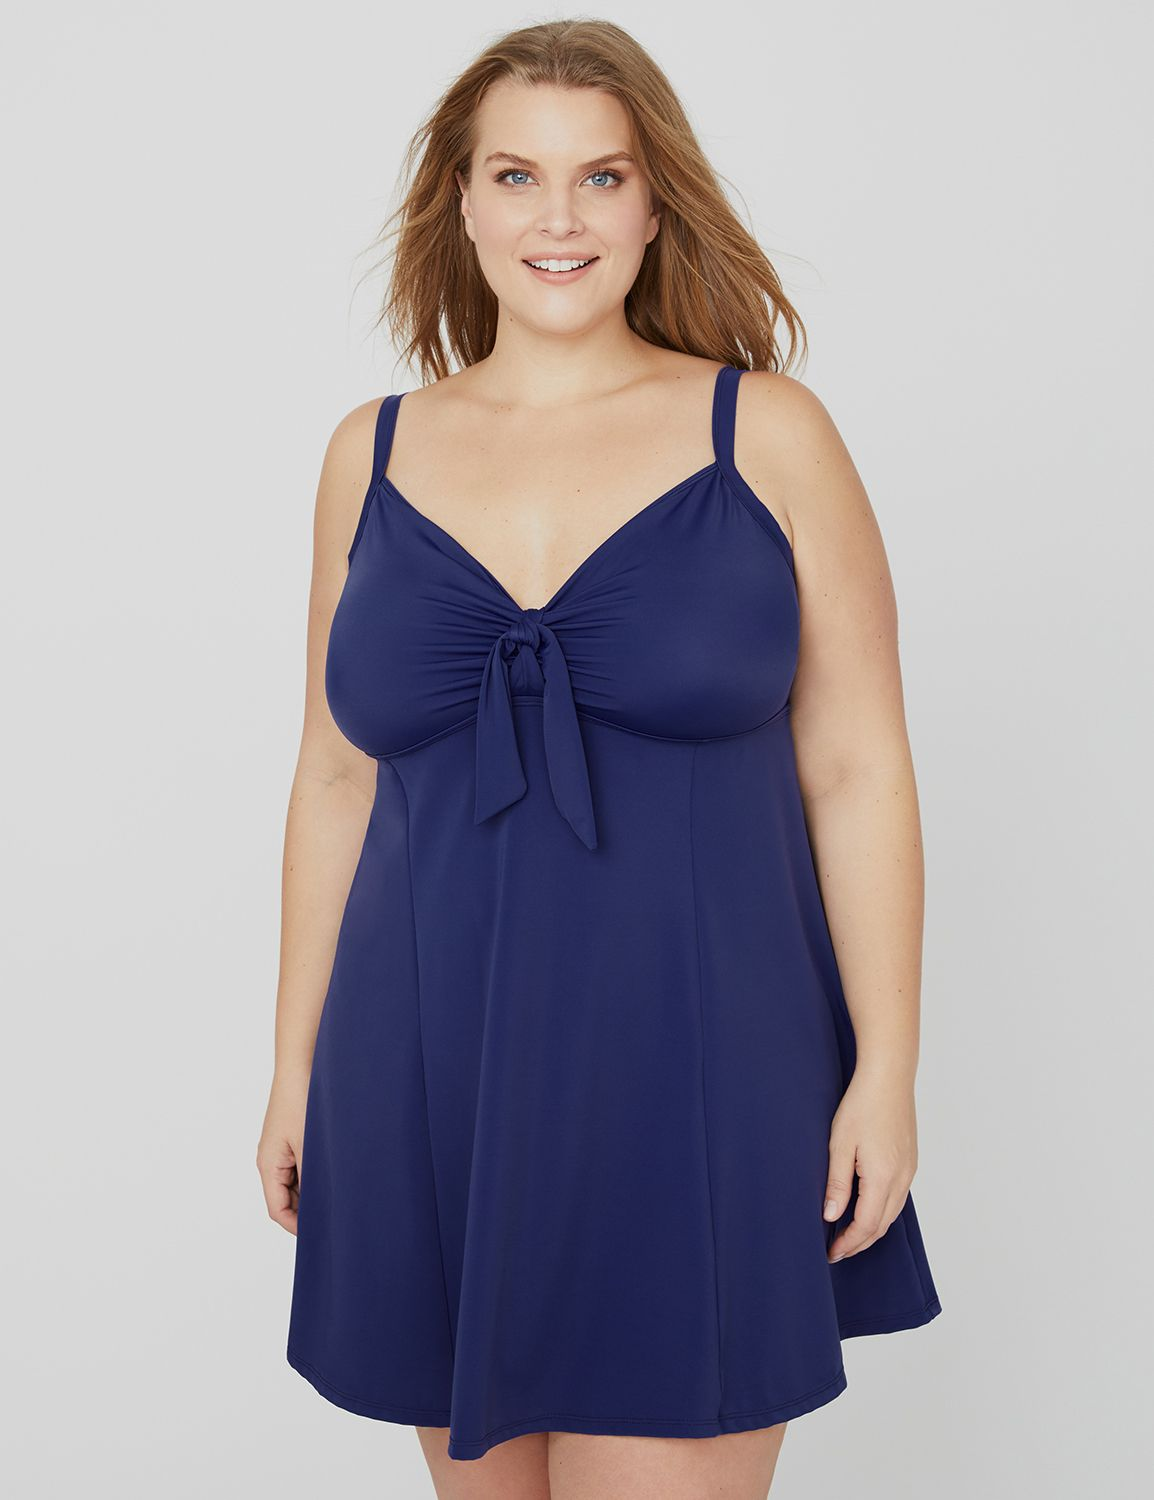 Sugar Hollow Swimdress Tie Front Swim Dress MP-300094180